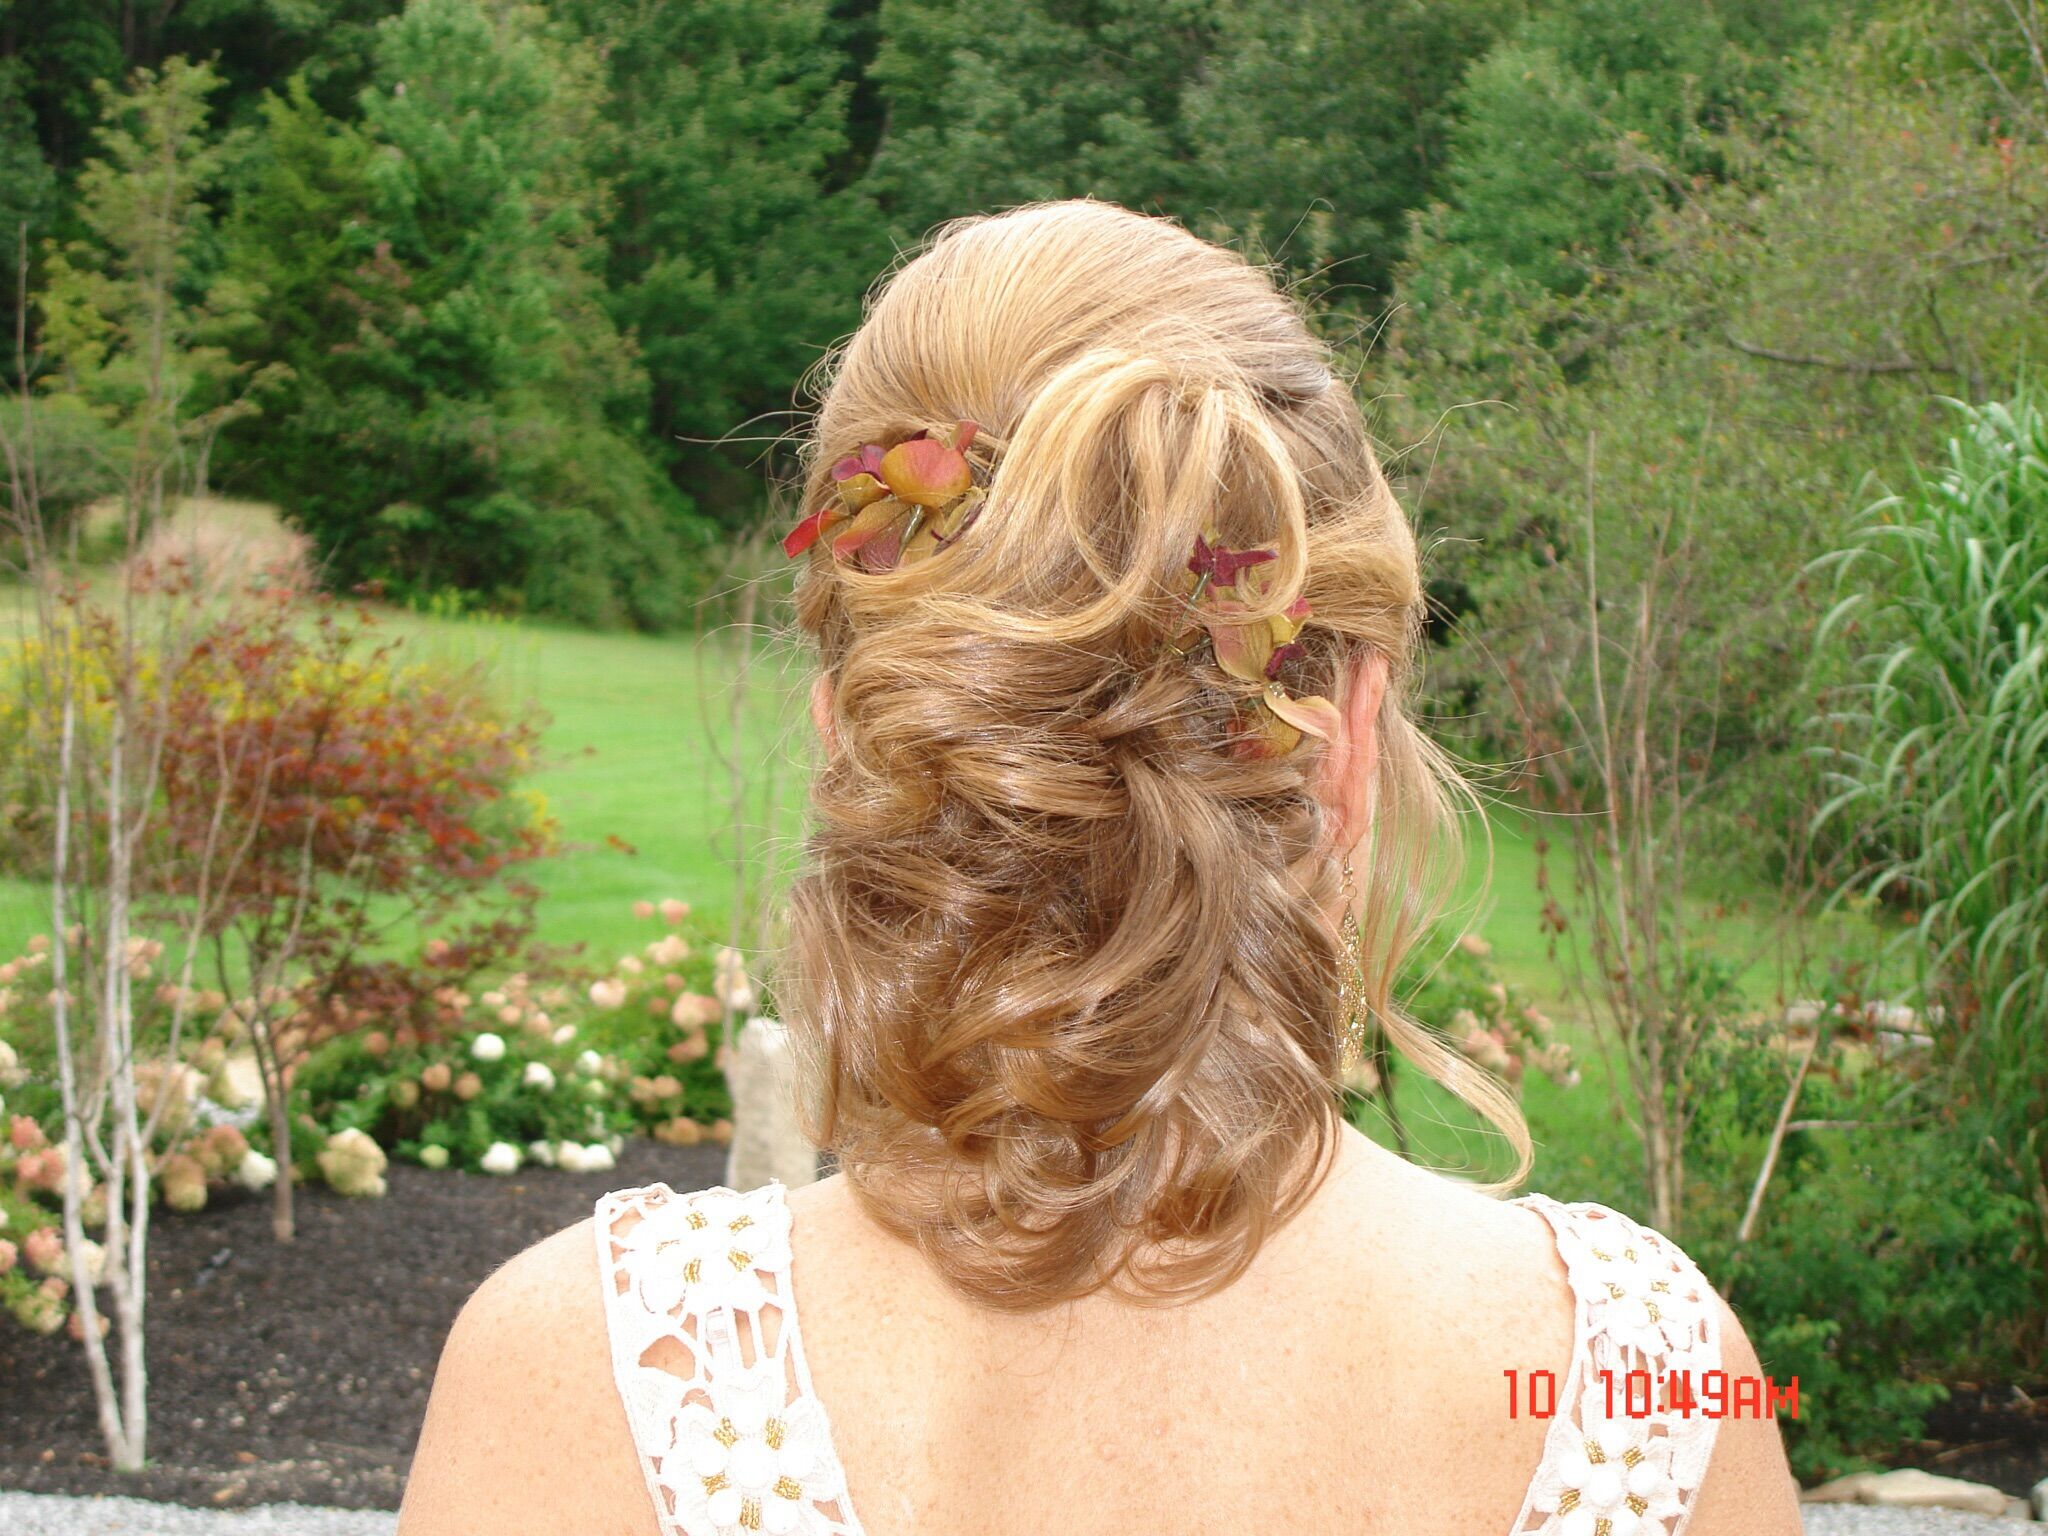 beauty salons in portland, me - the knot